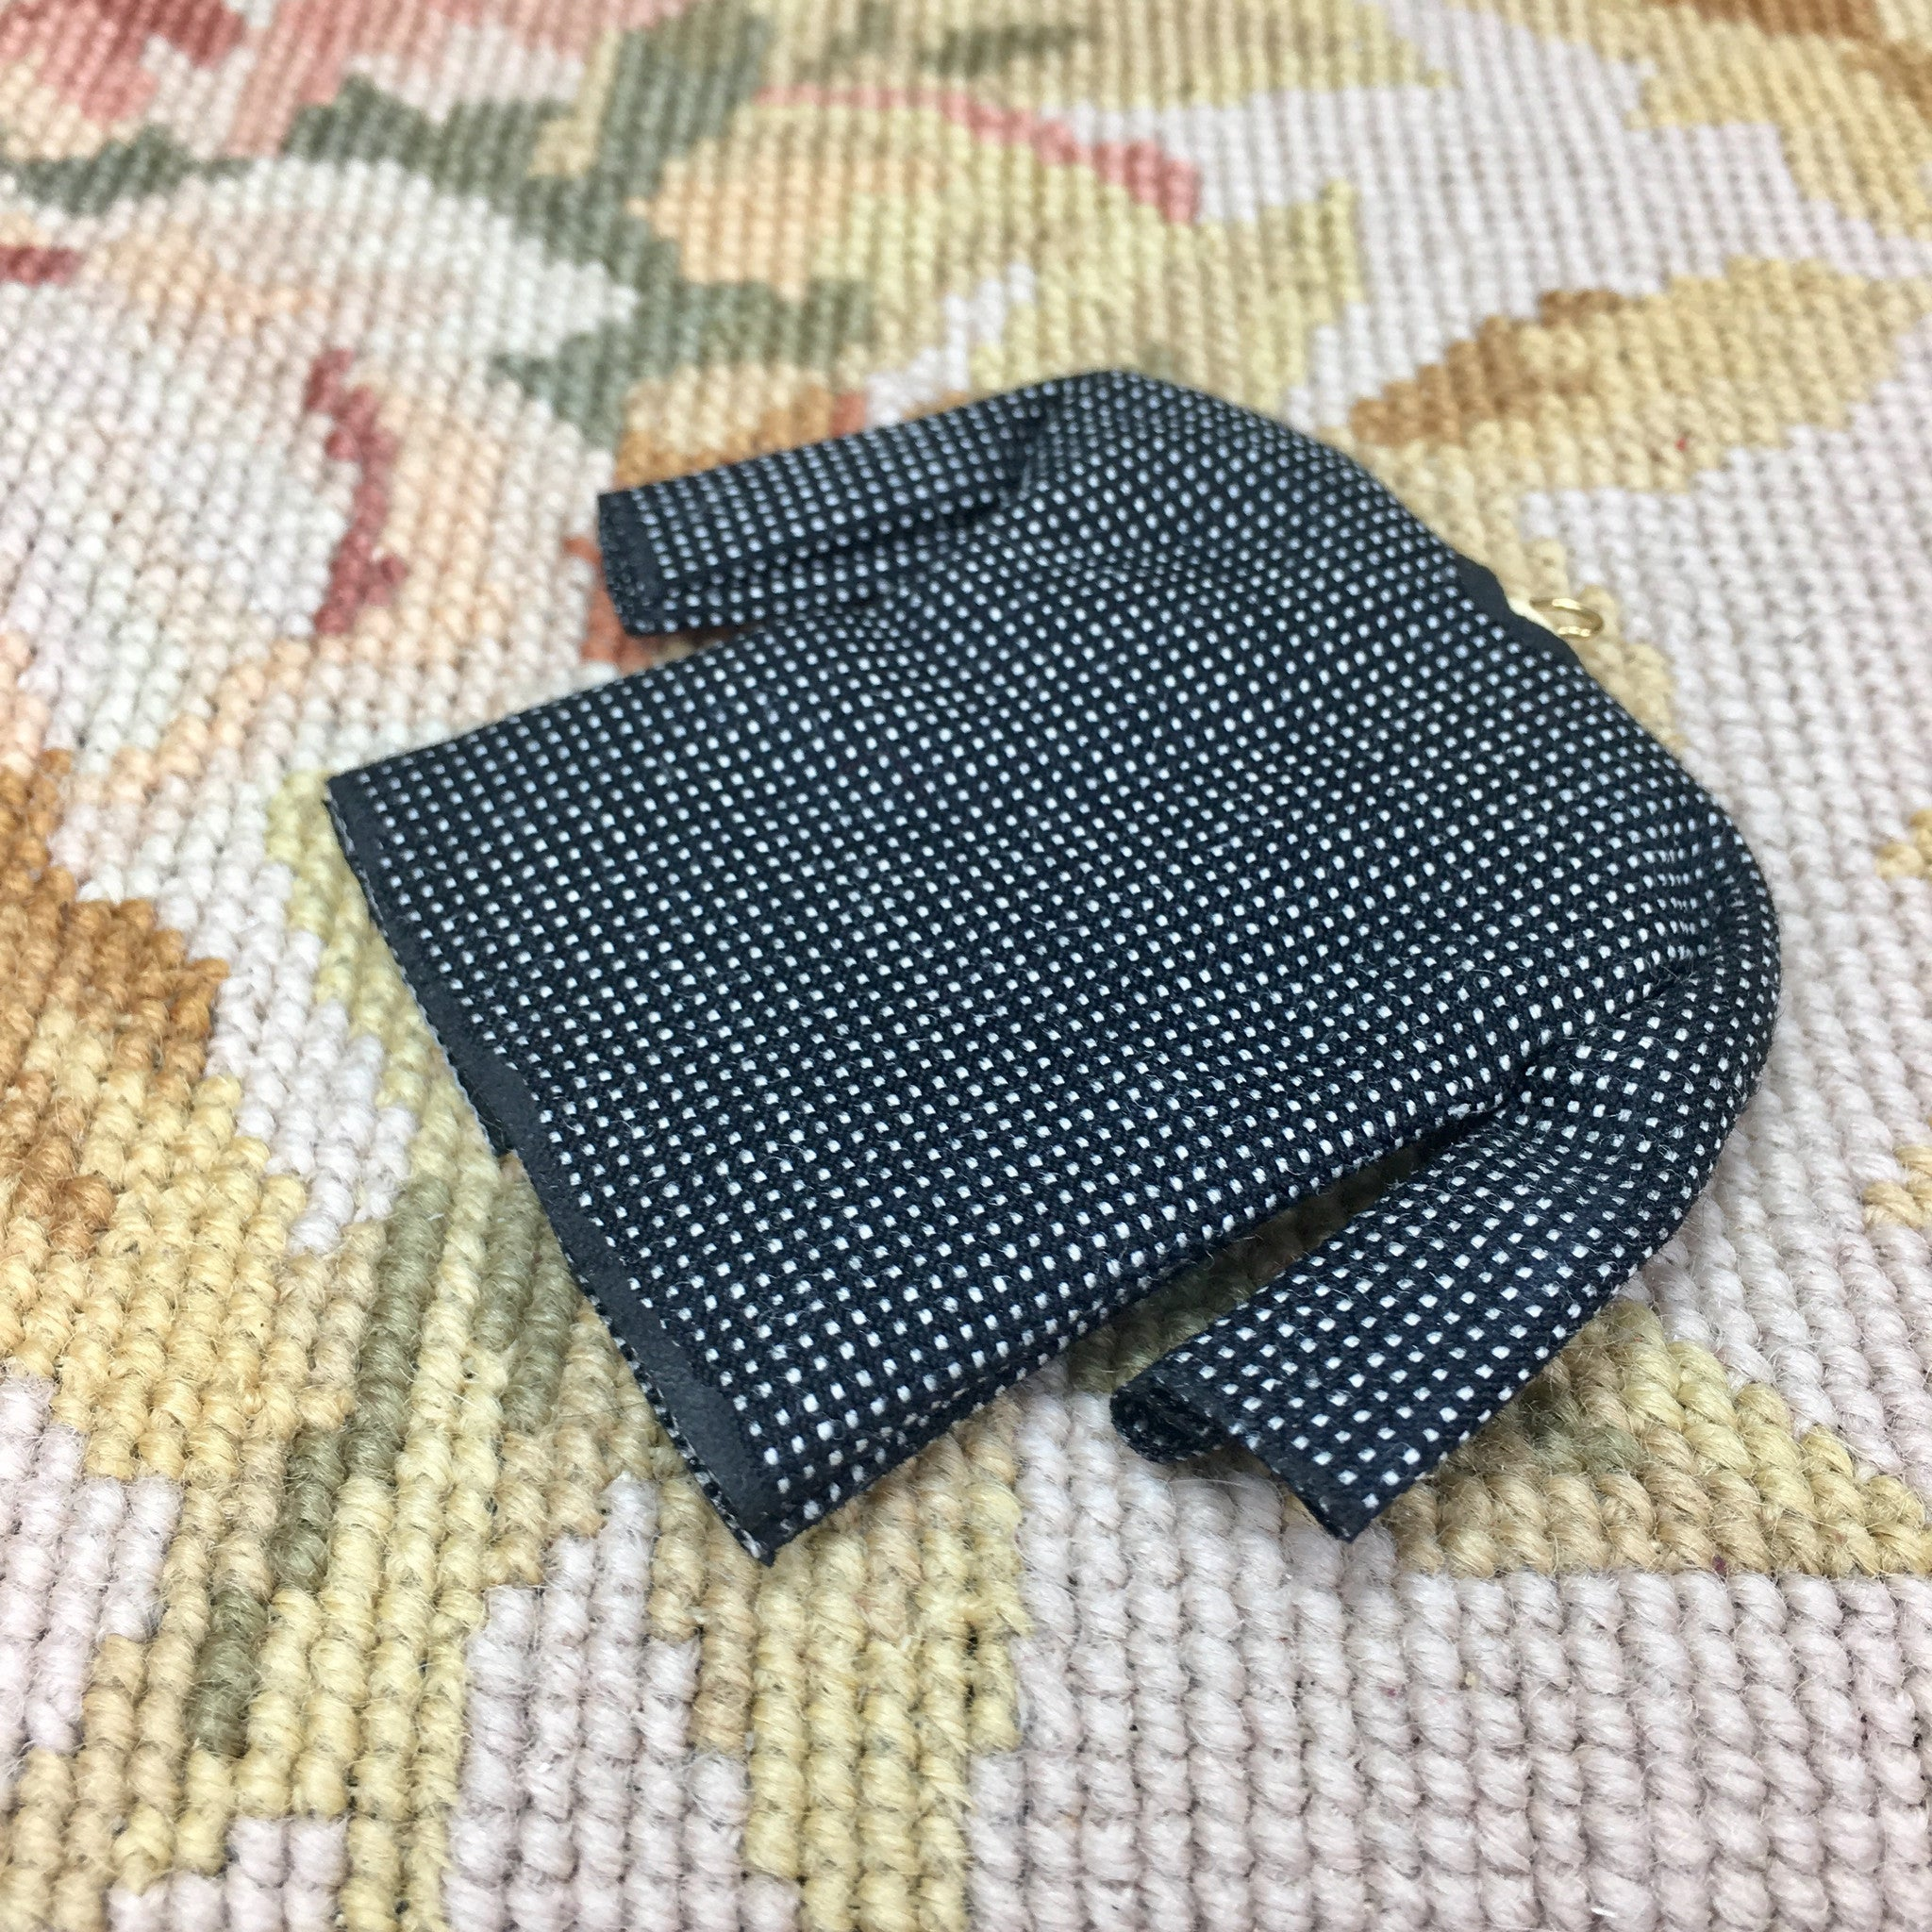 Jacket Sports Coat on Hanger 1:12 Dollhouse Miniature Clothing